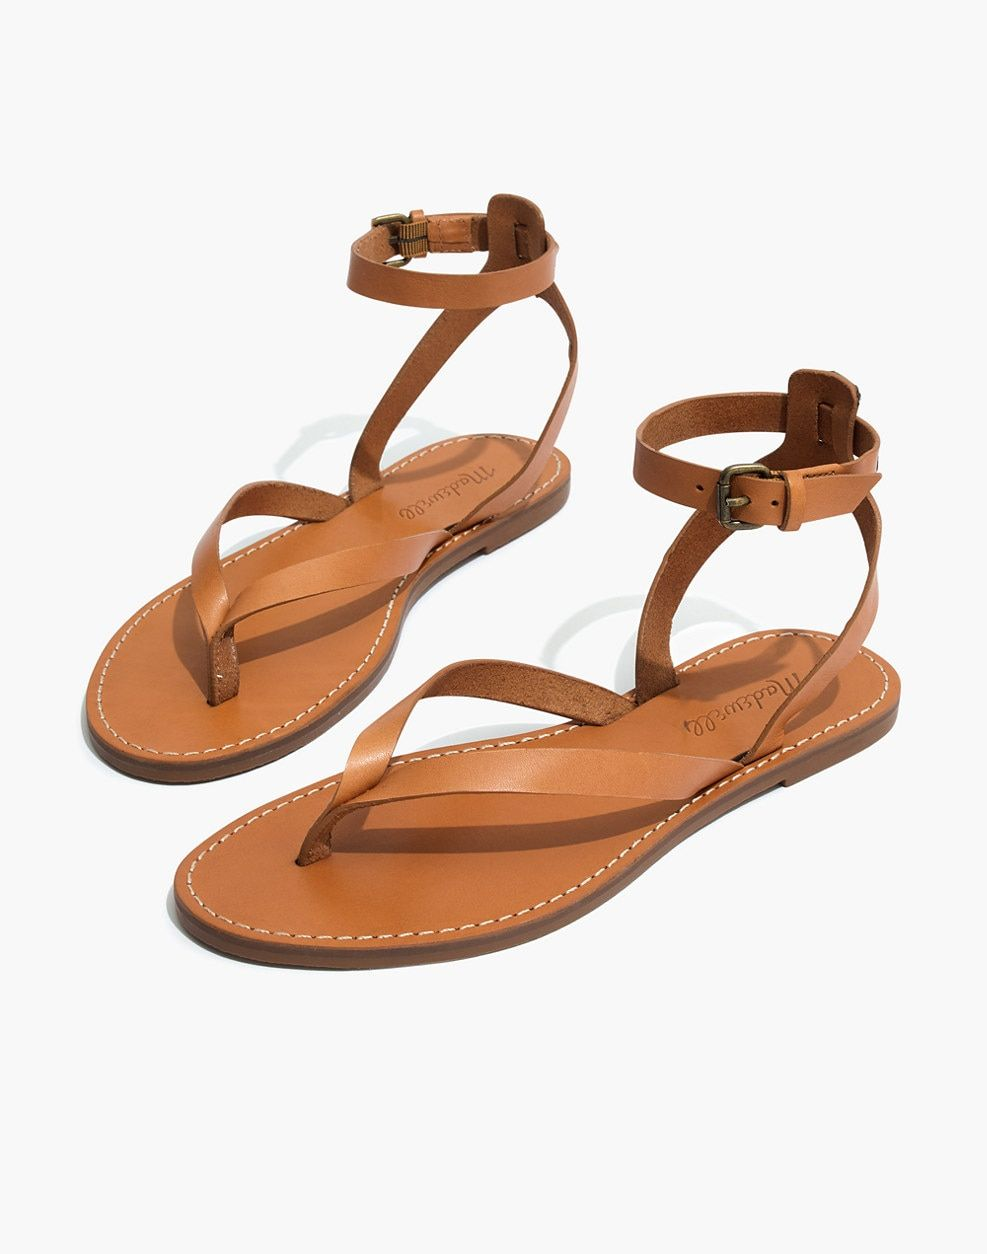 f05efa48253b The Boardwalk Thong Sandal   latest   greatest